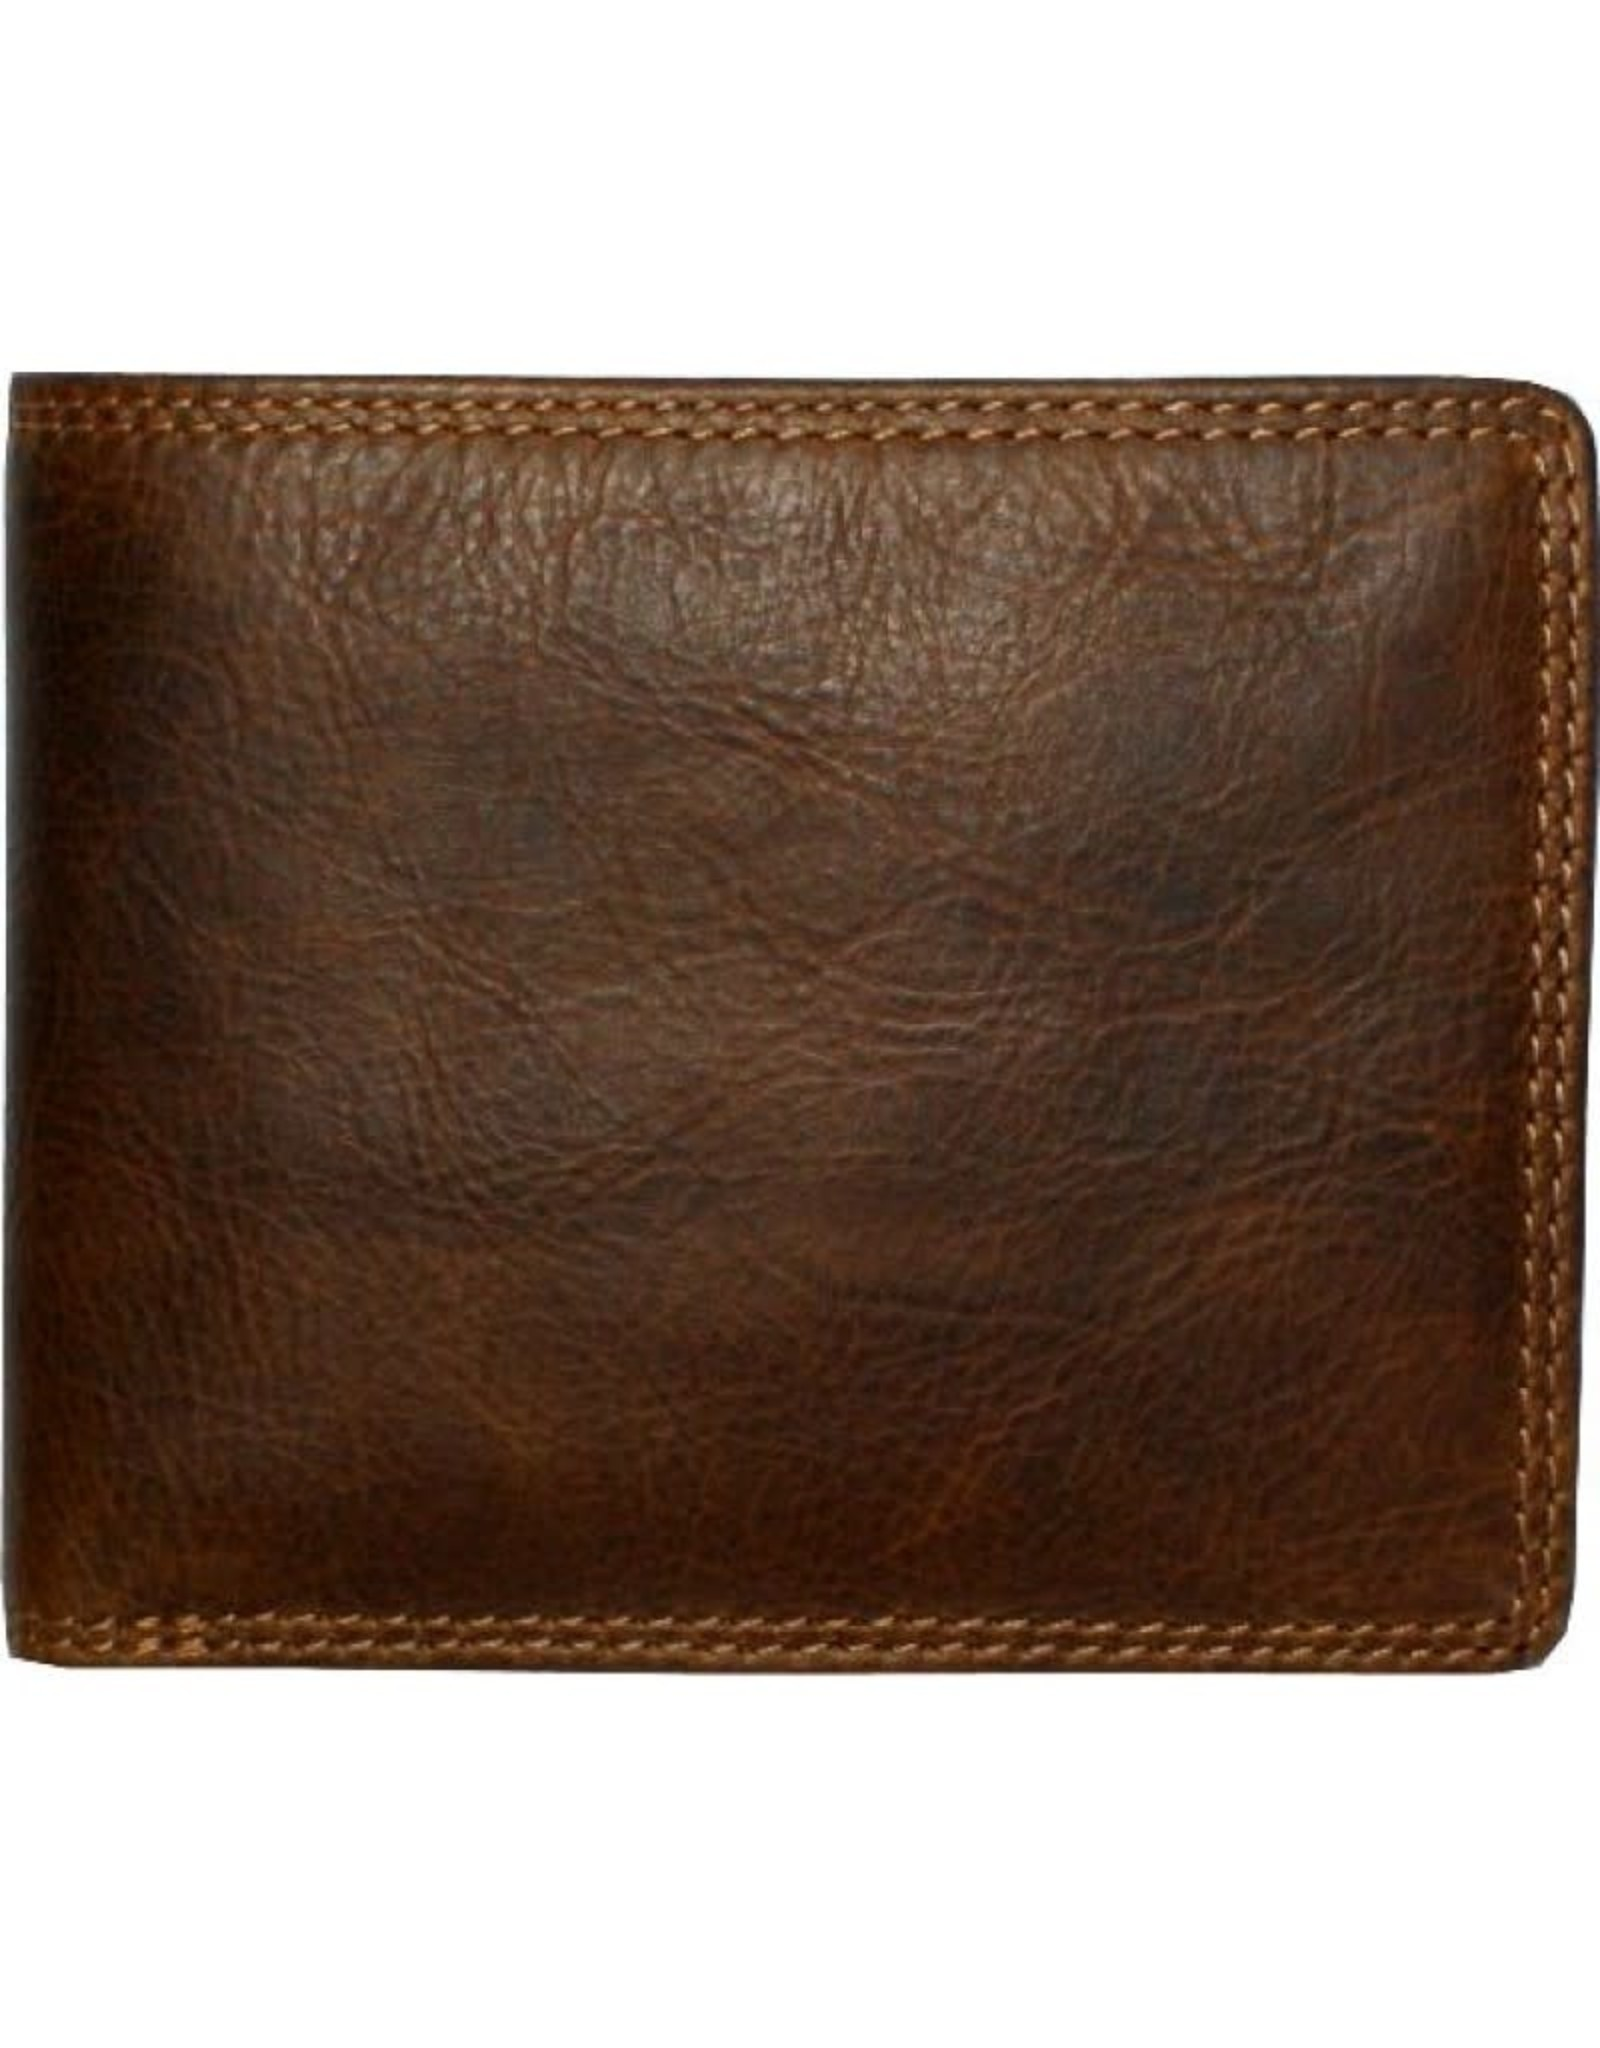 """Rugged Earth Rugged Earth 990010 Portefeuille  Brown W4 1/2""""*H3 1/2""""*D3/4"""""""